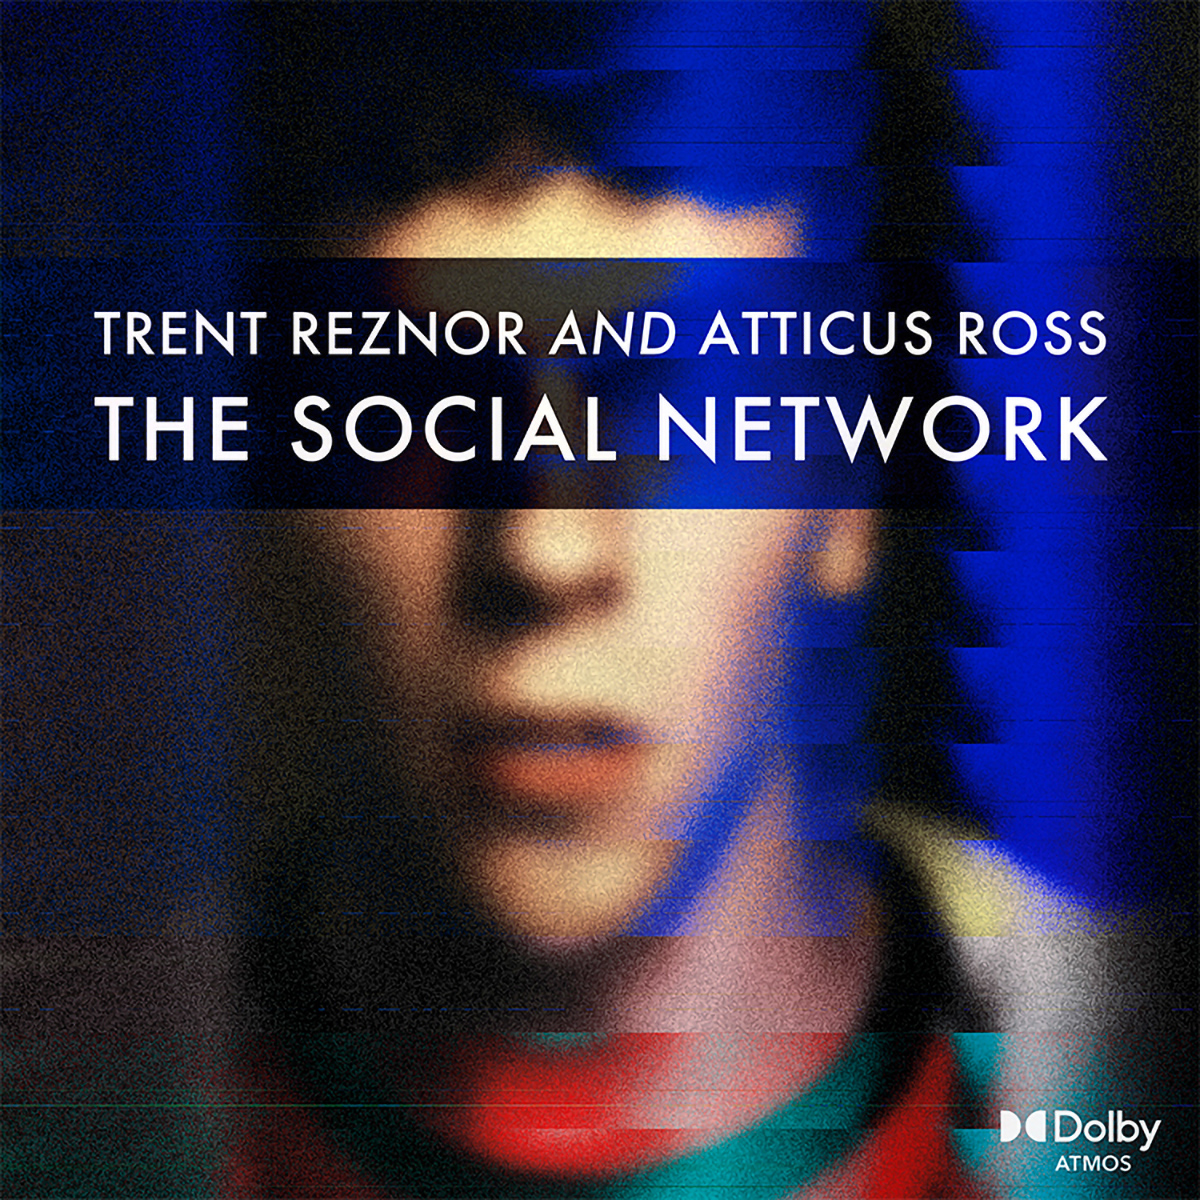 The Social Network Score Released in Dolby Atmos 3D Audio